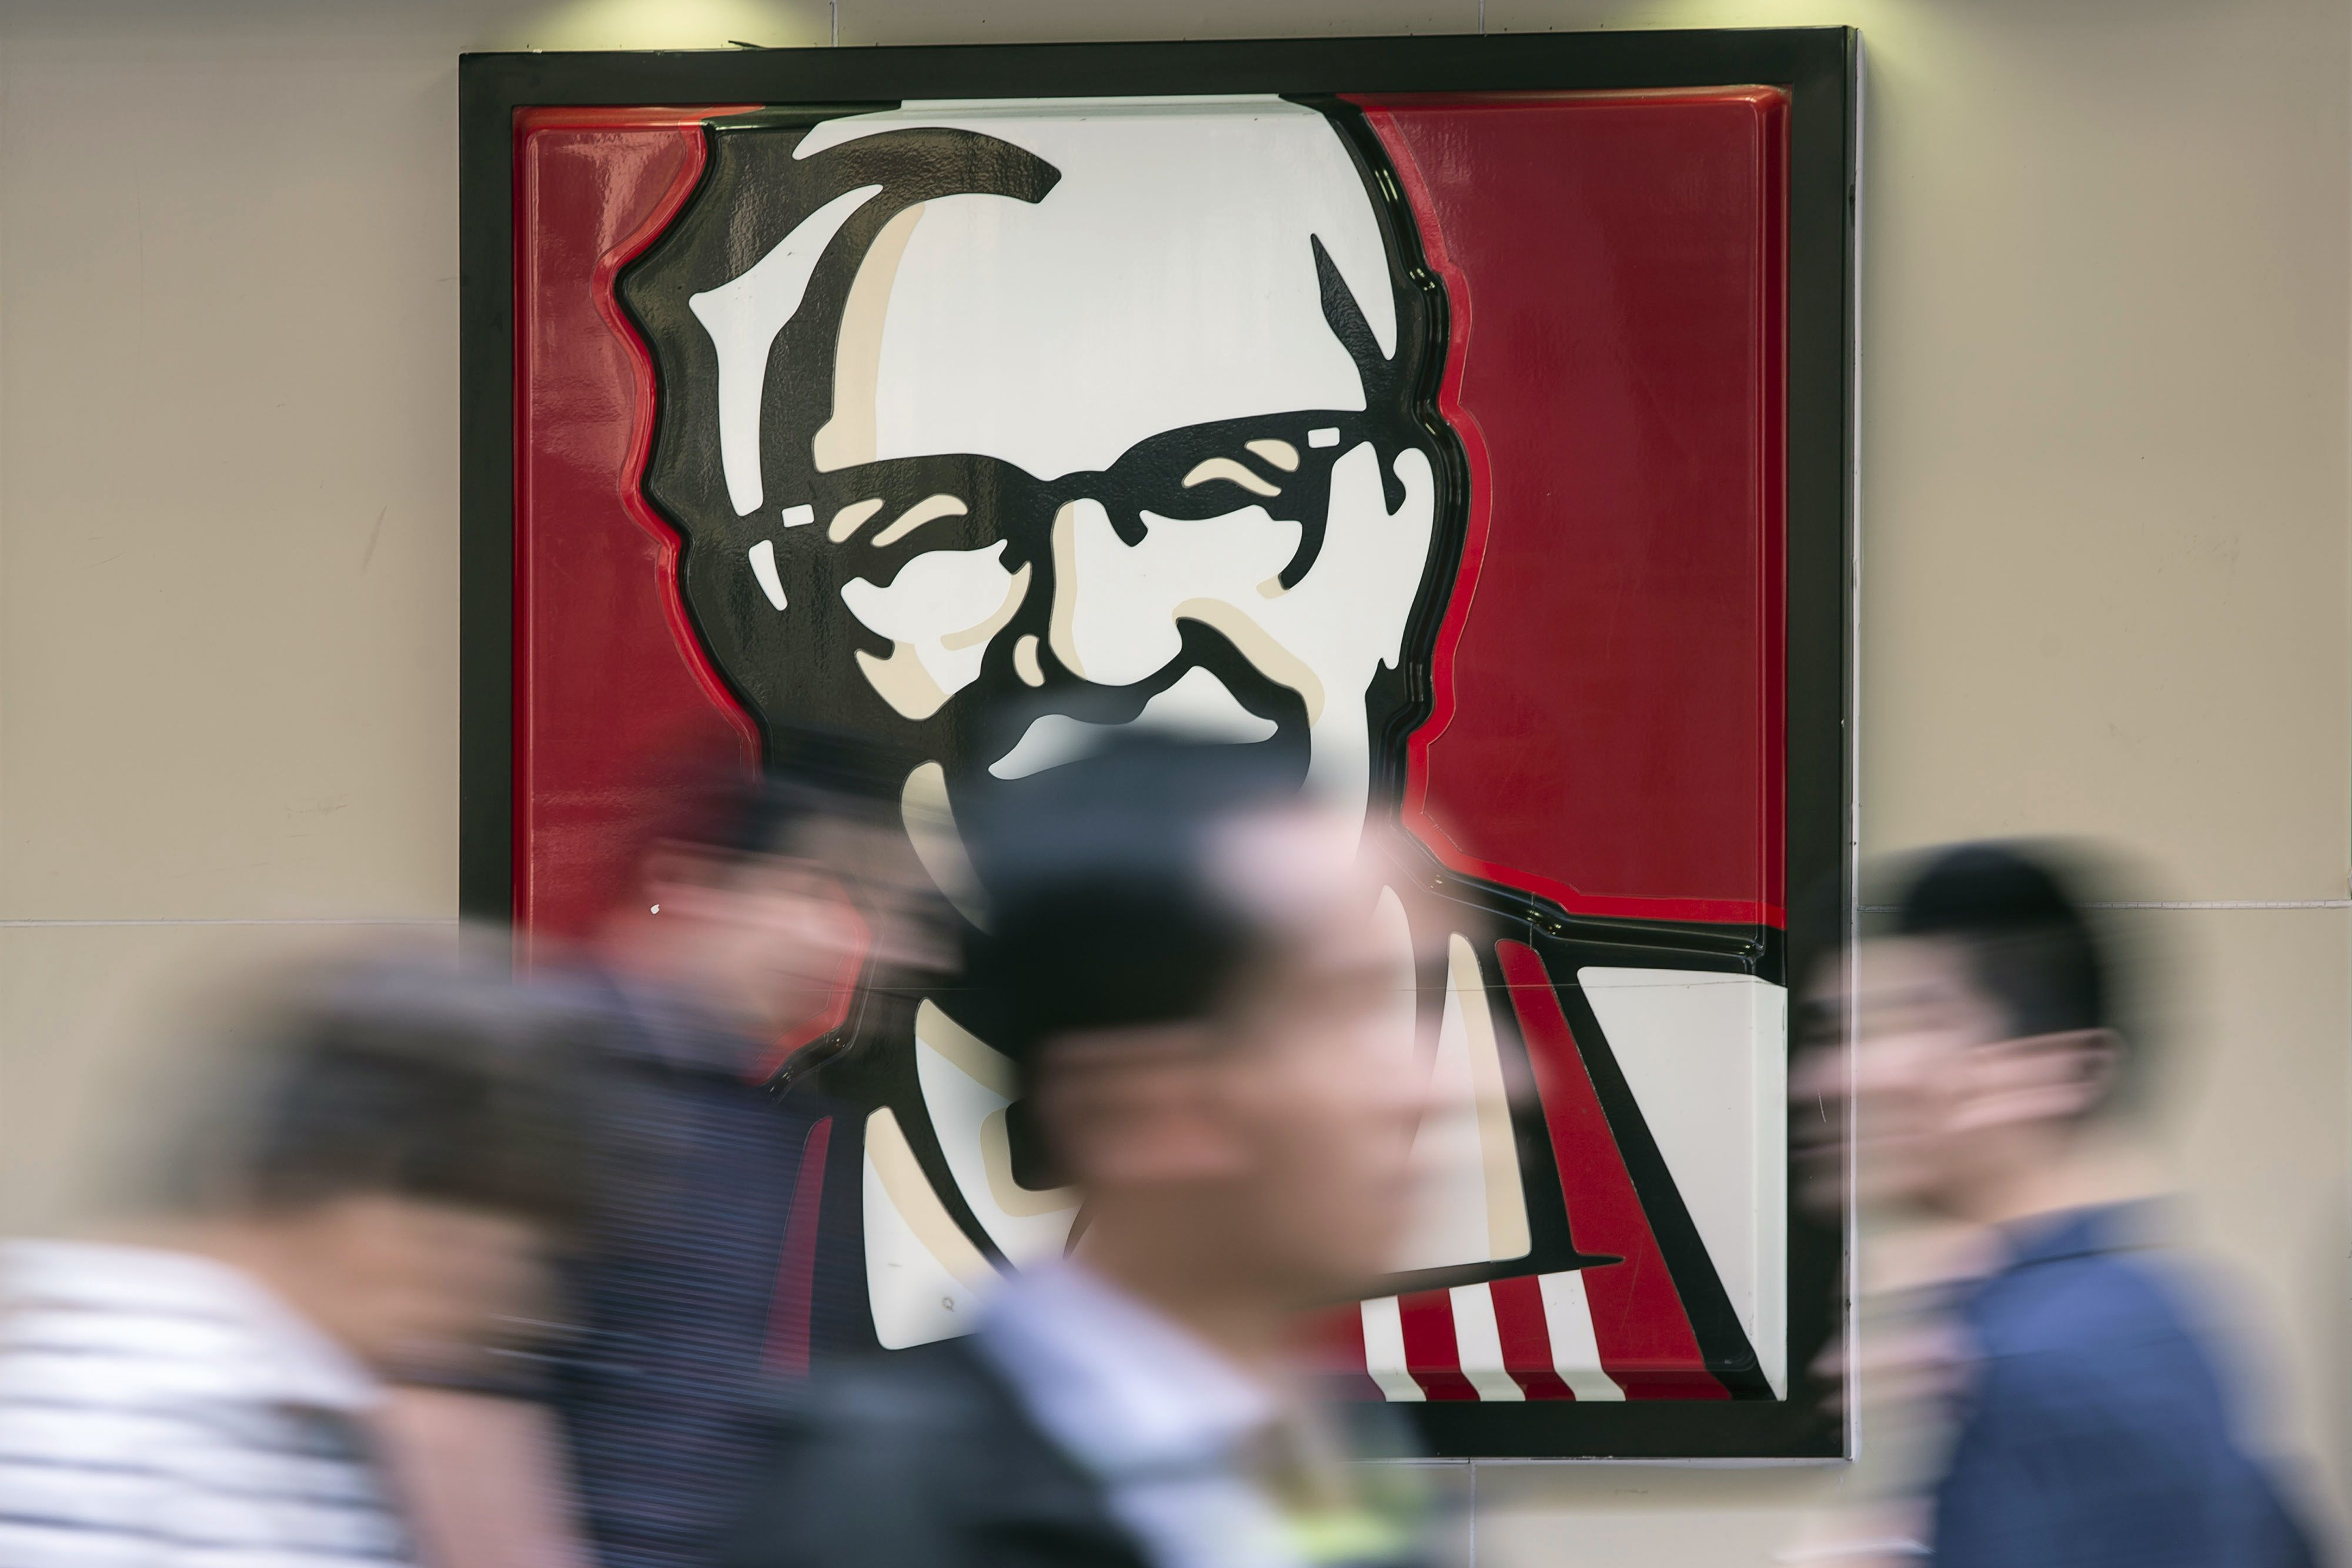 KFC is considering plant-based fried chicken but has no plans to test right now